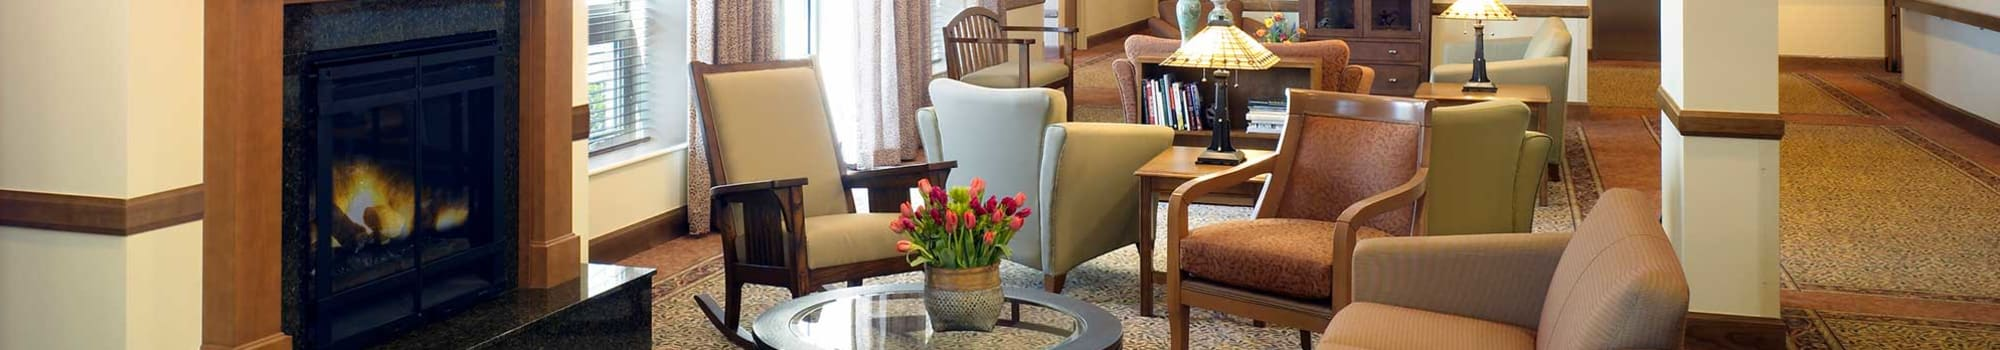 Assisted living in Elk Grove Village, IL